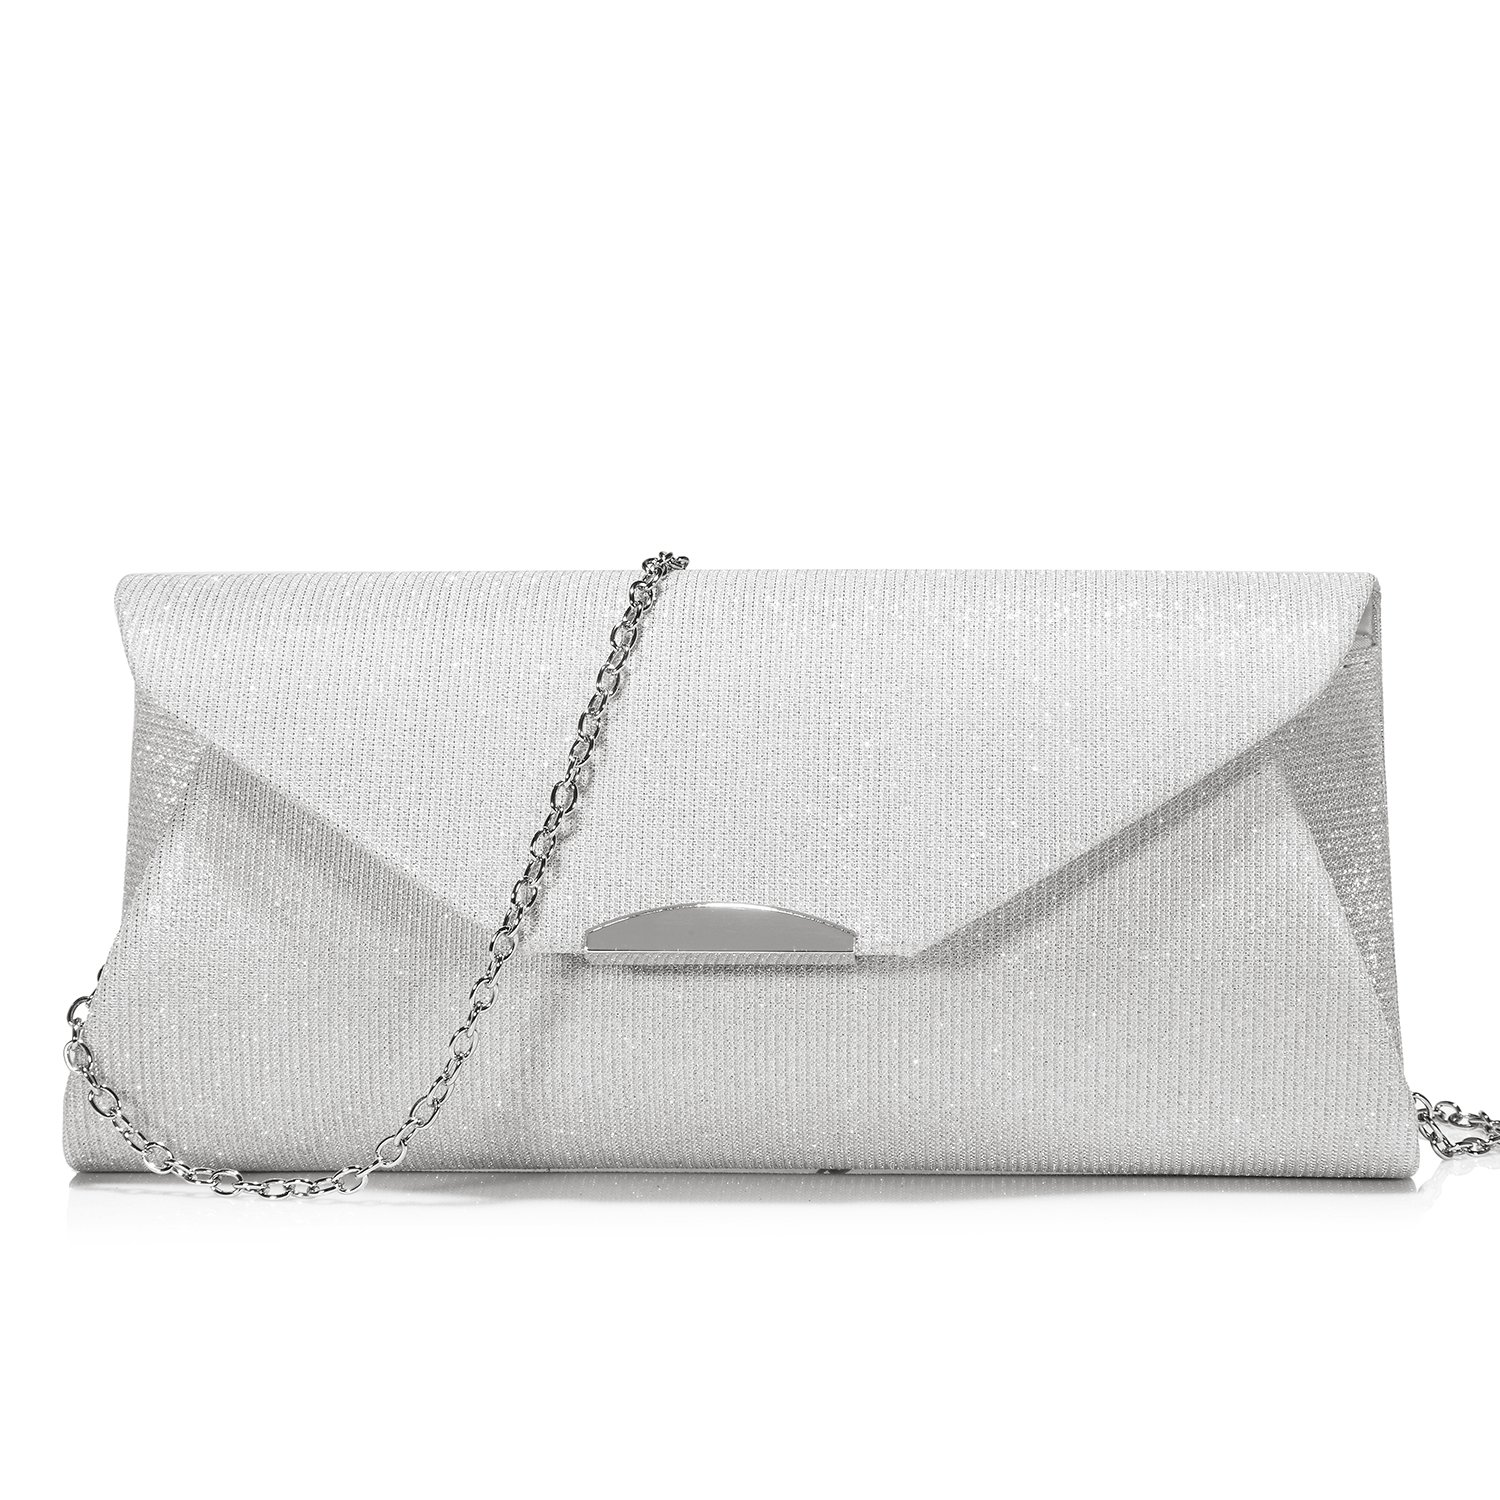 Evening Bag Clutch Handbags Envelope Purse for Women Flap Glitter with Chain Strap ARHNWB110601LK-FBA